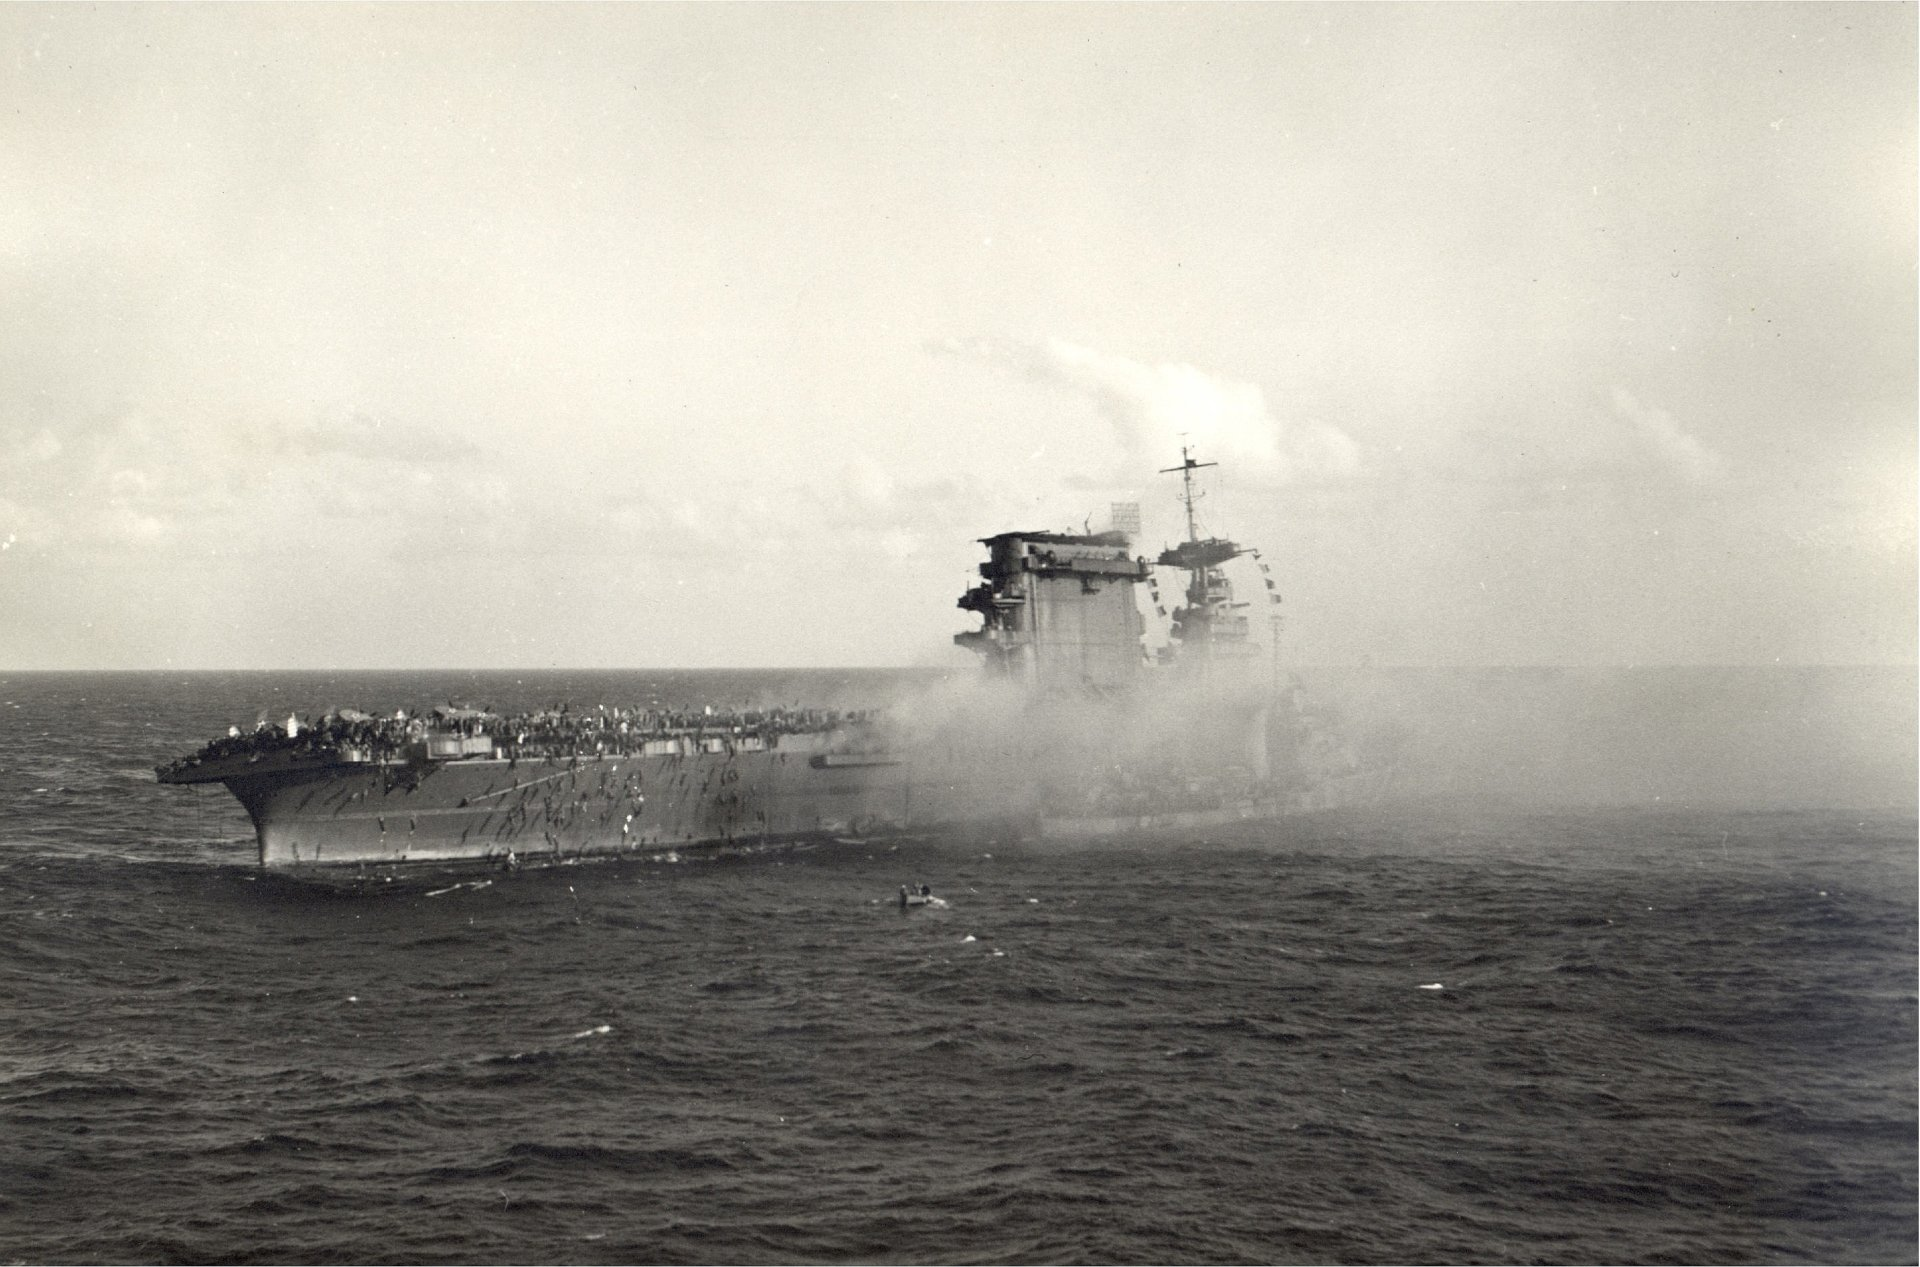 uss lexington at the battle of the coral sea fond d u0026 39  u00e9cran hd